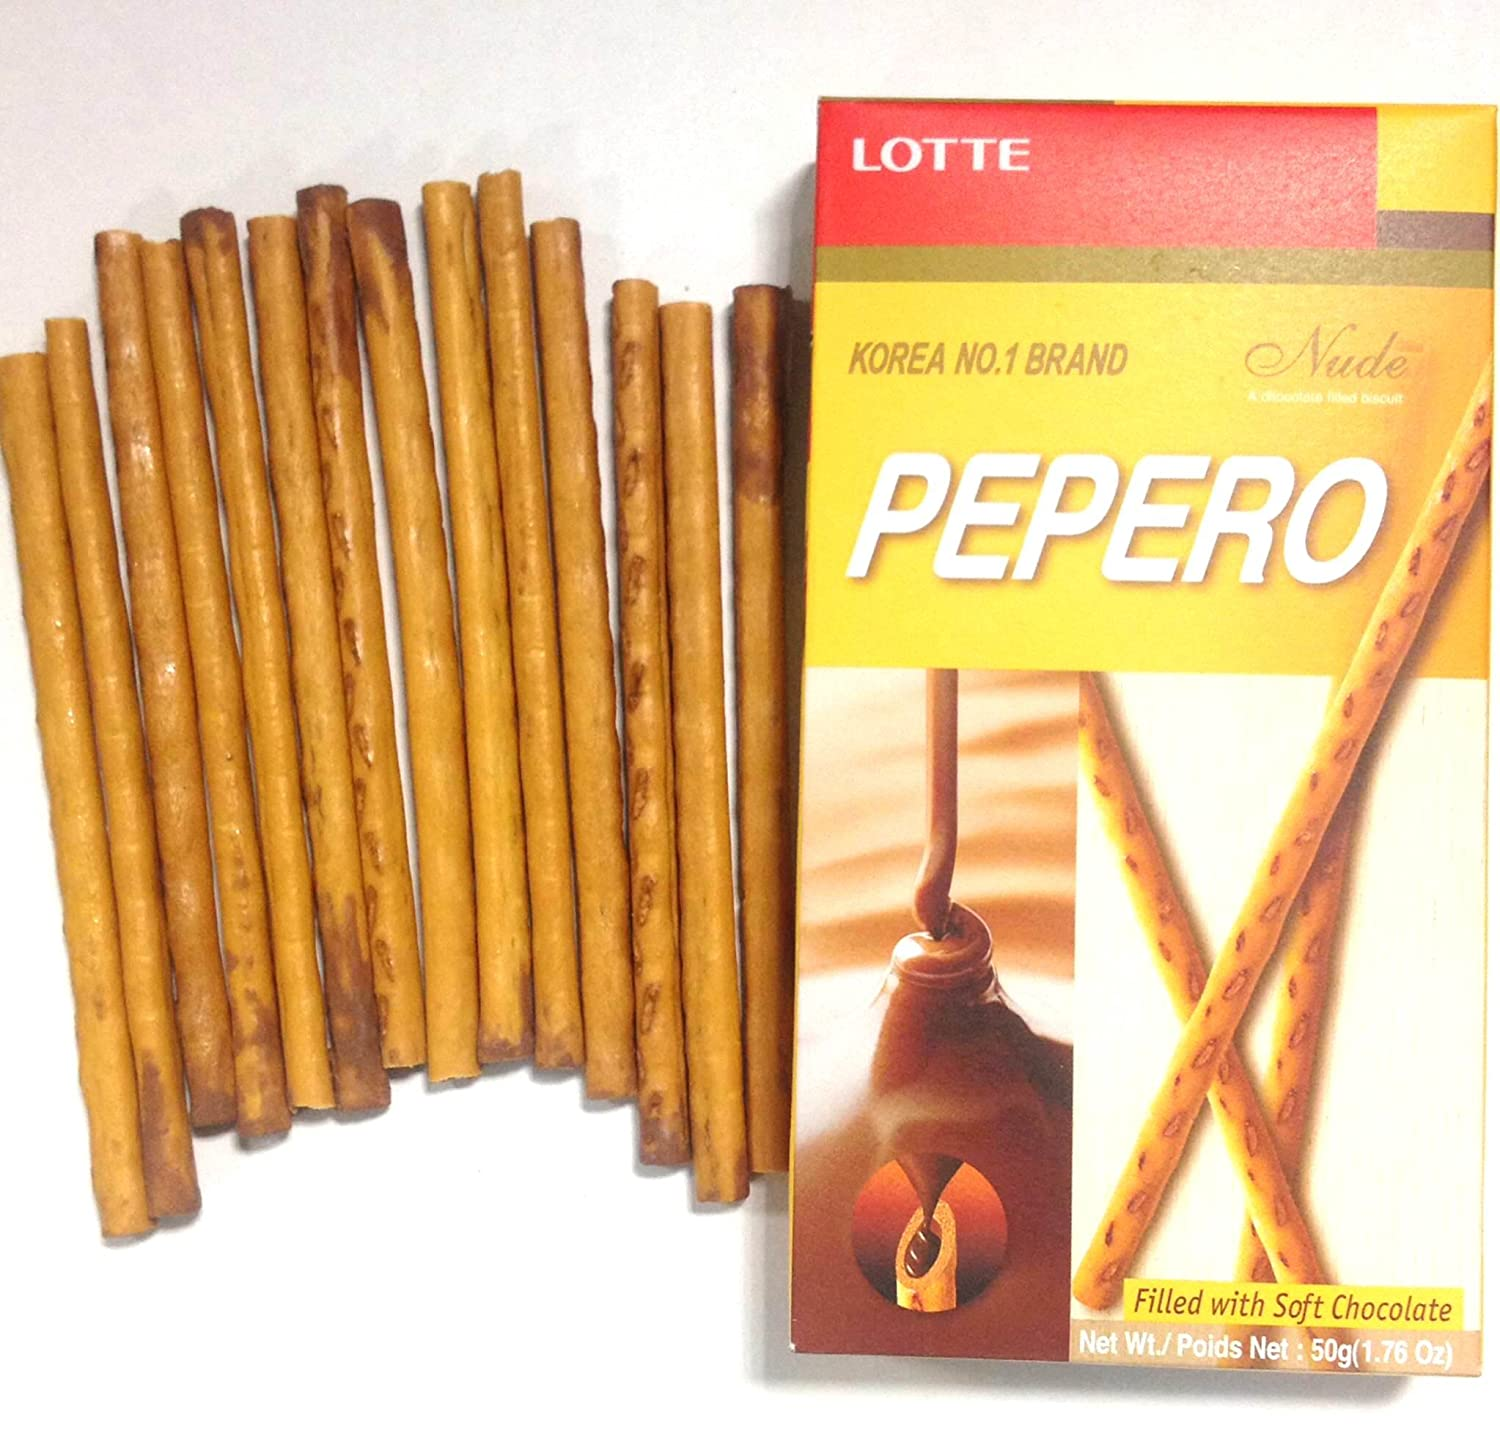 Lotte Pepero Nude Family Pack